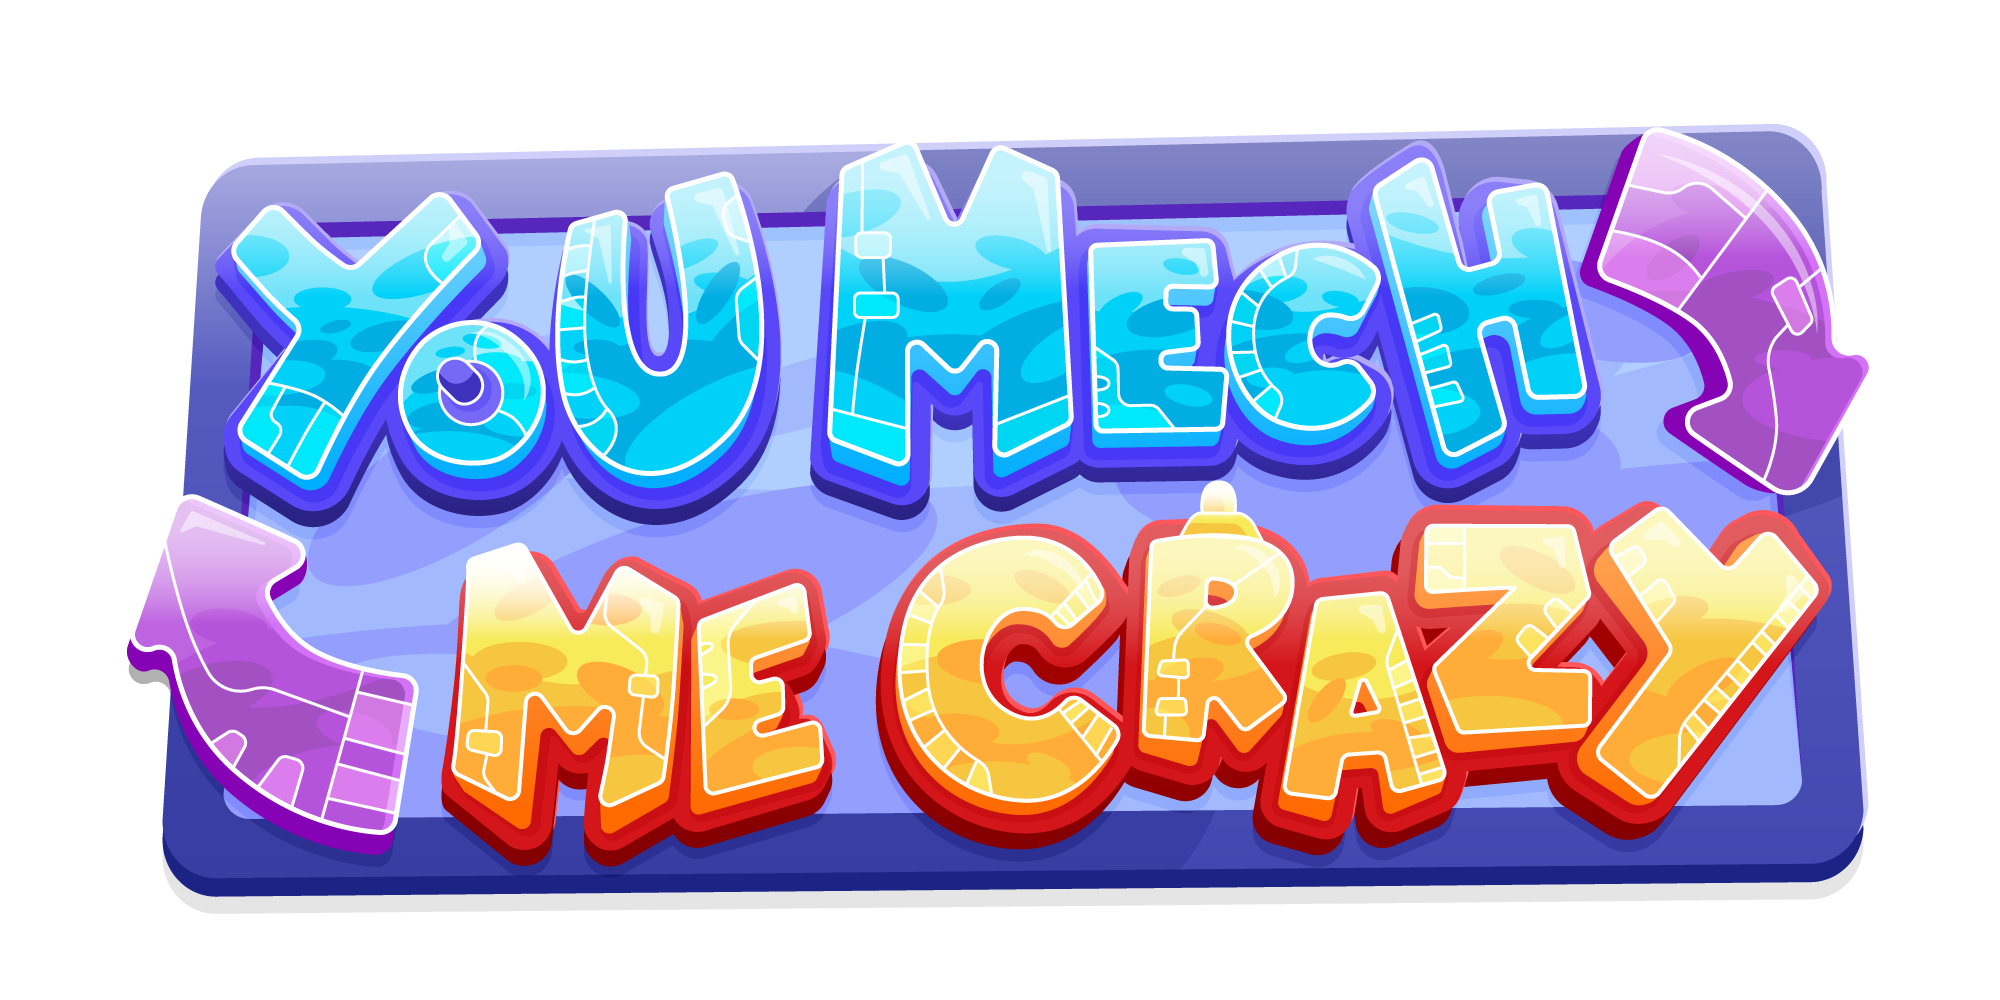 You Mech Me Crazy